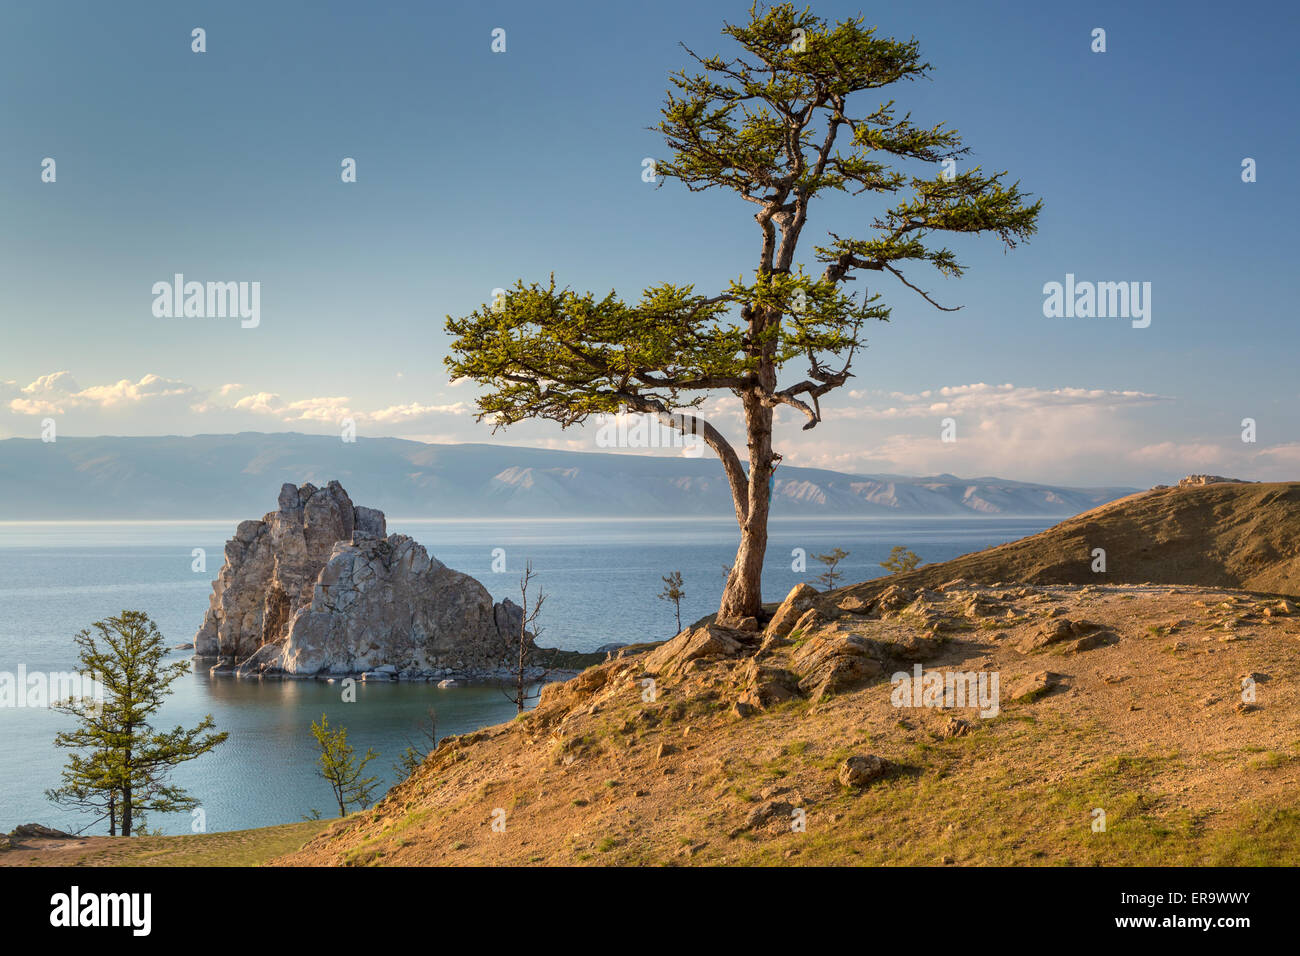 View of coast of Baikal lake, Shaman rock, the tree of desires and cape Burhan on Olkhon Island, Russia - Stock Image